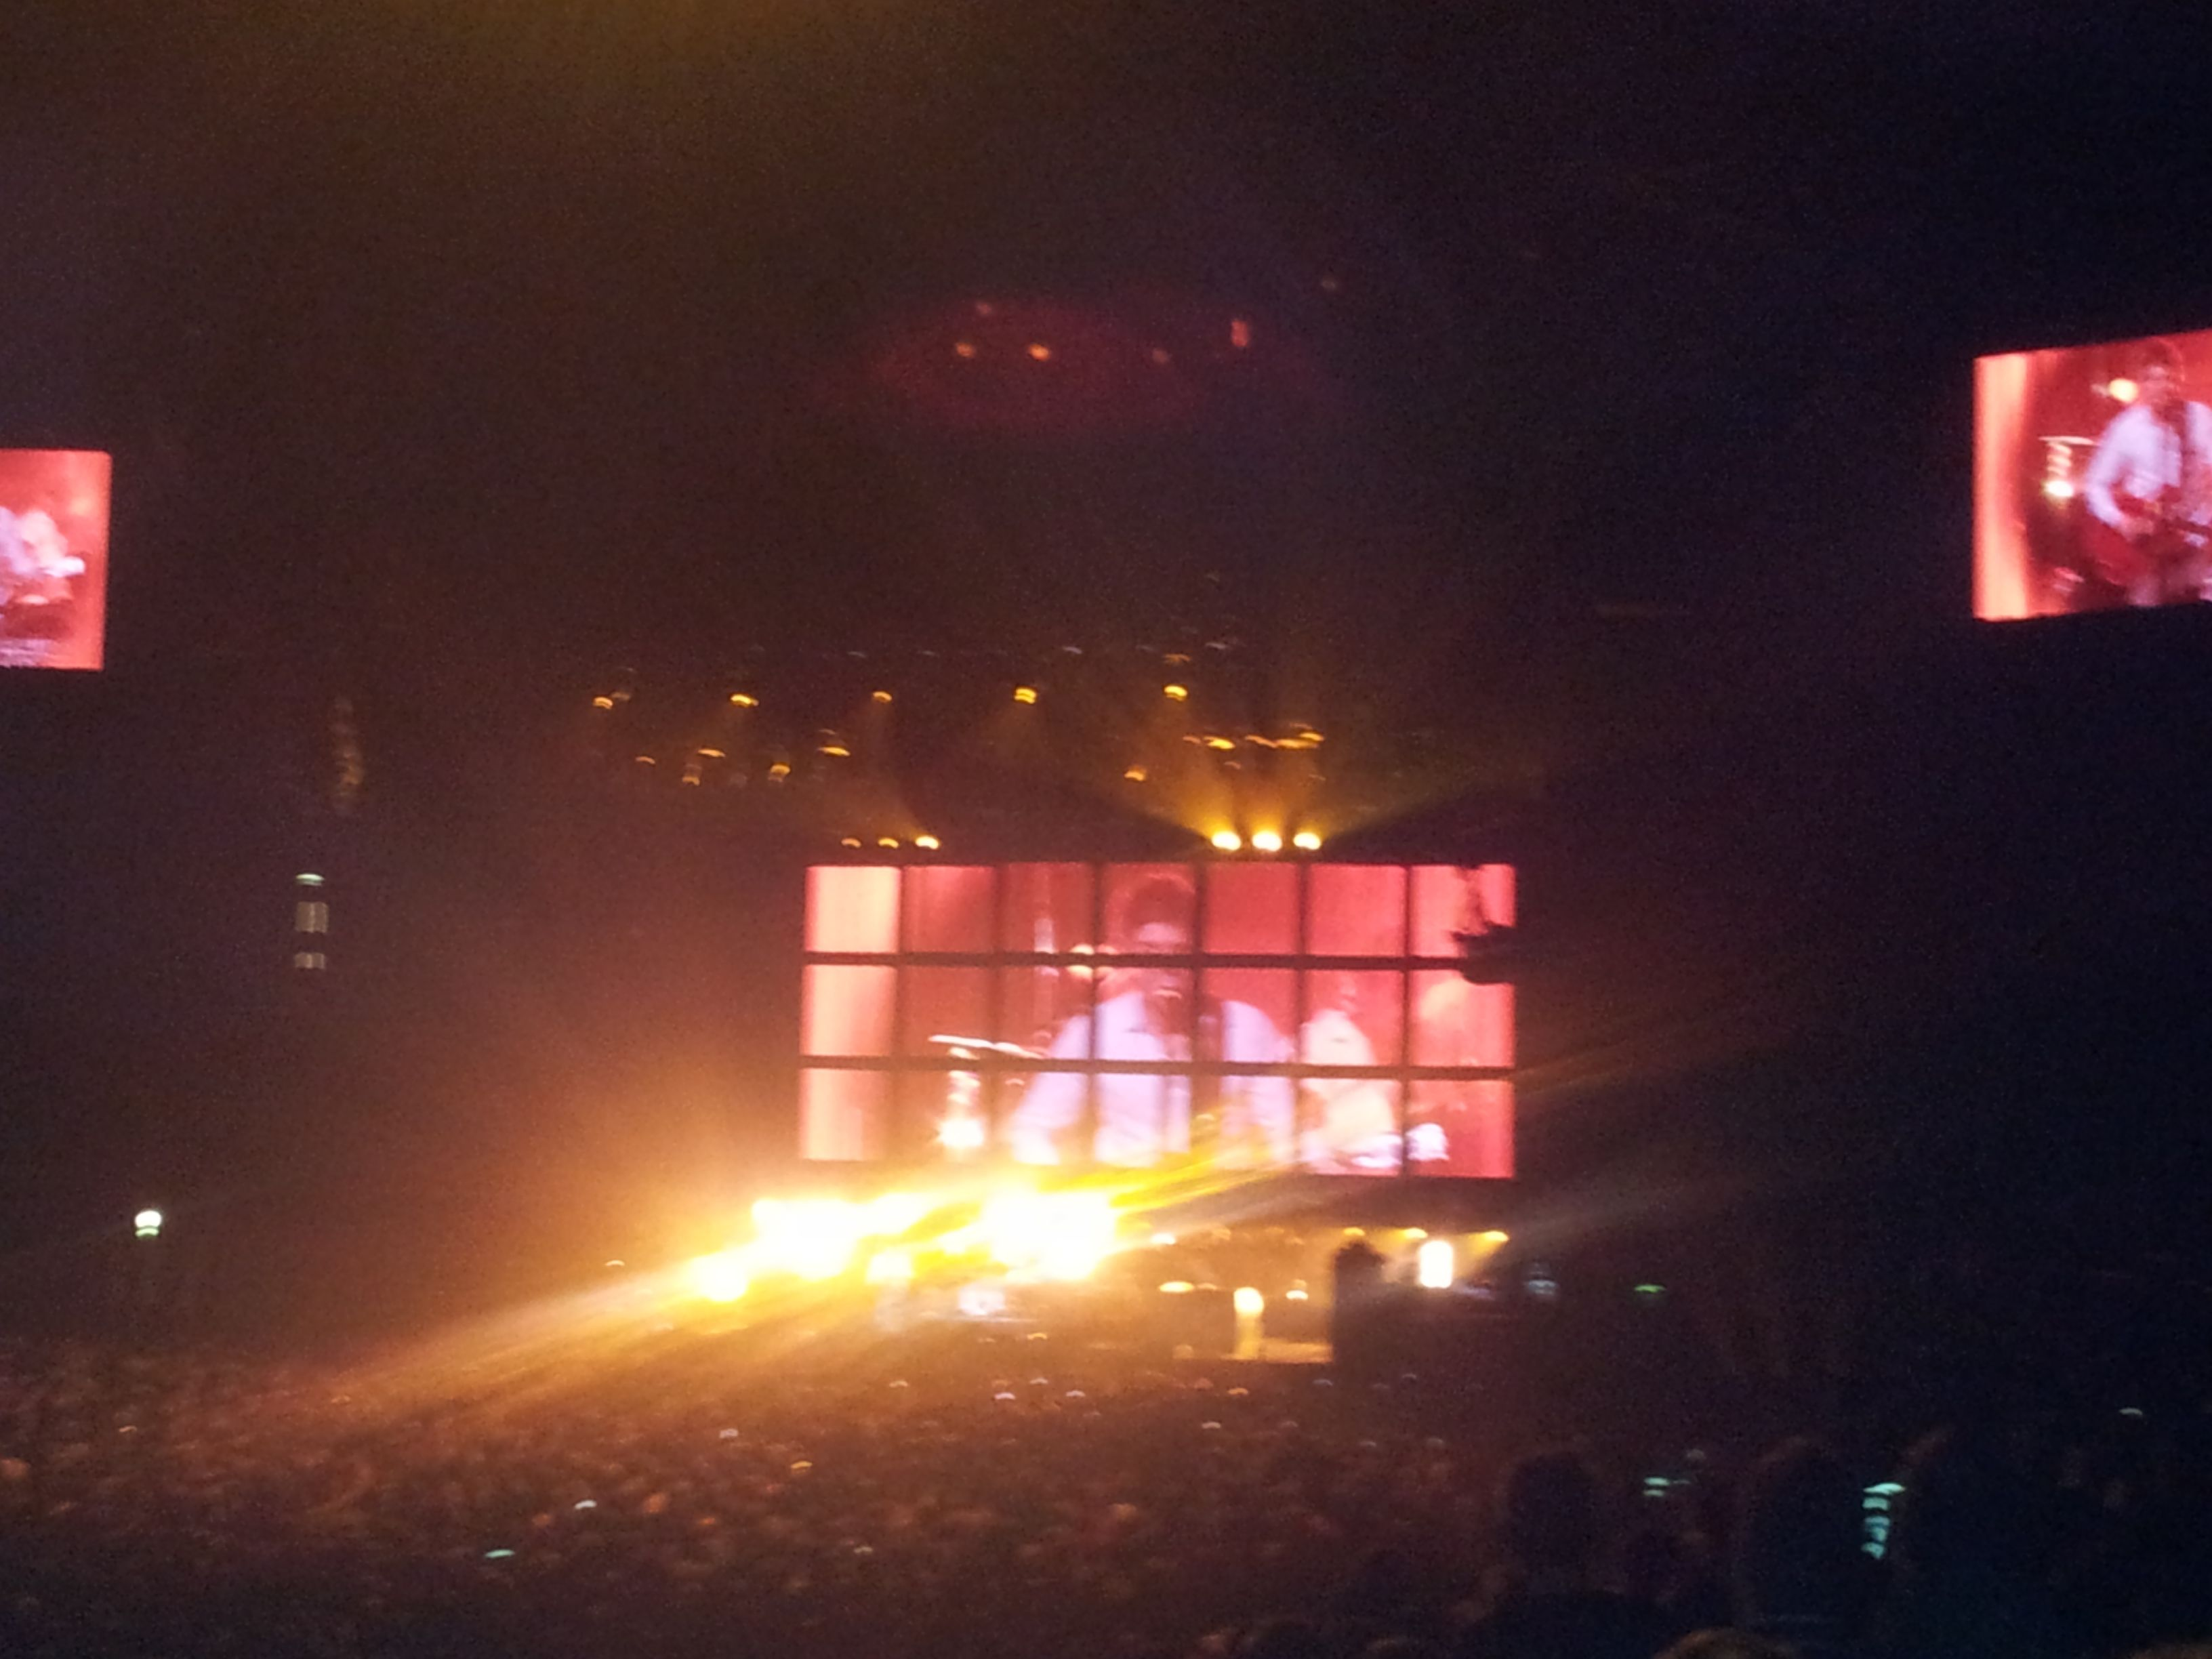 Noel Gallagher at the O2, really disappointed with the crowd that night...